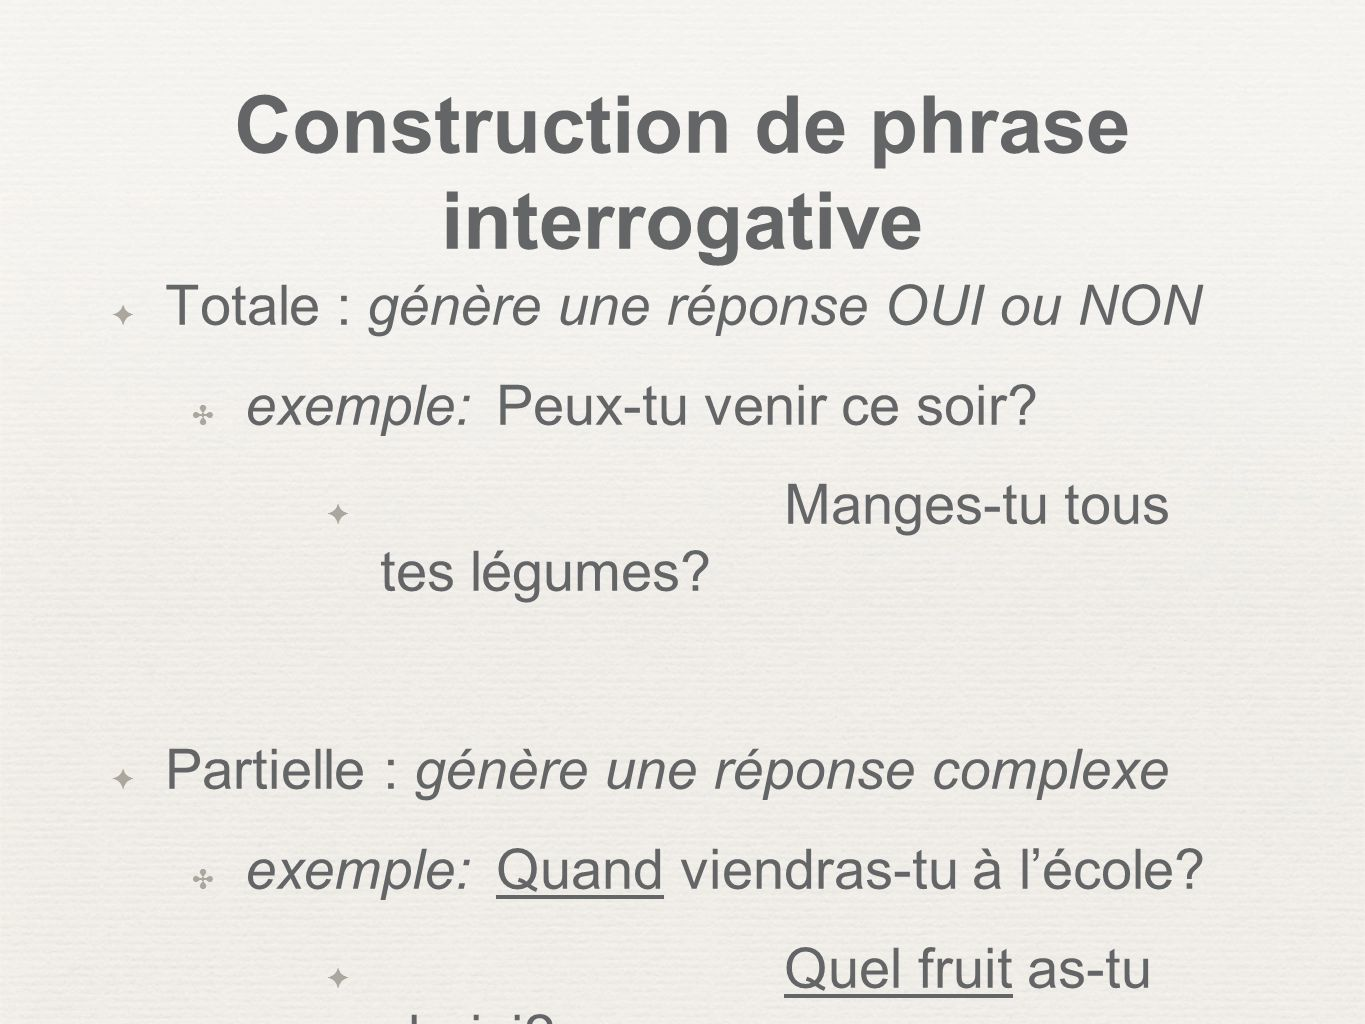 Construction de phrase interrogative